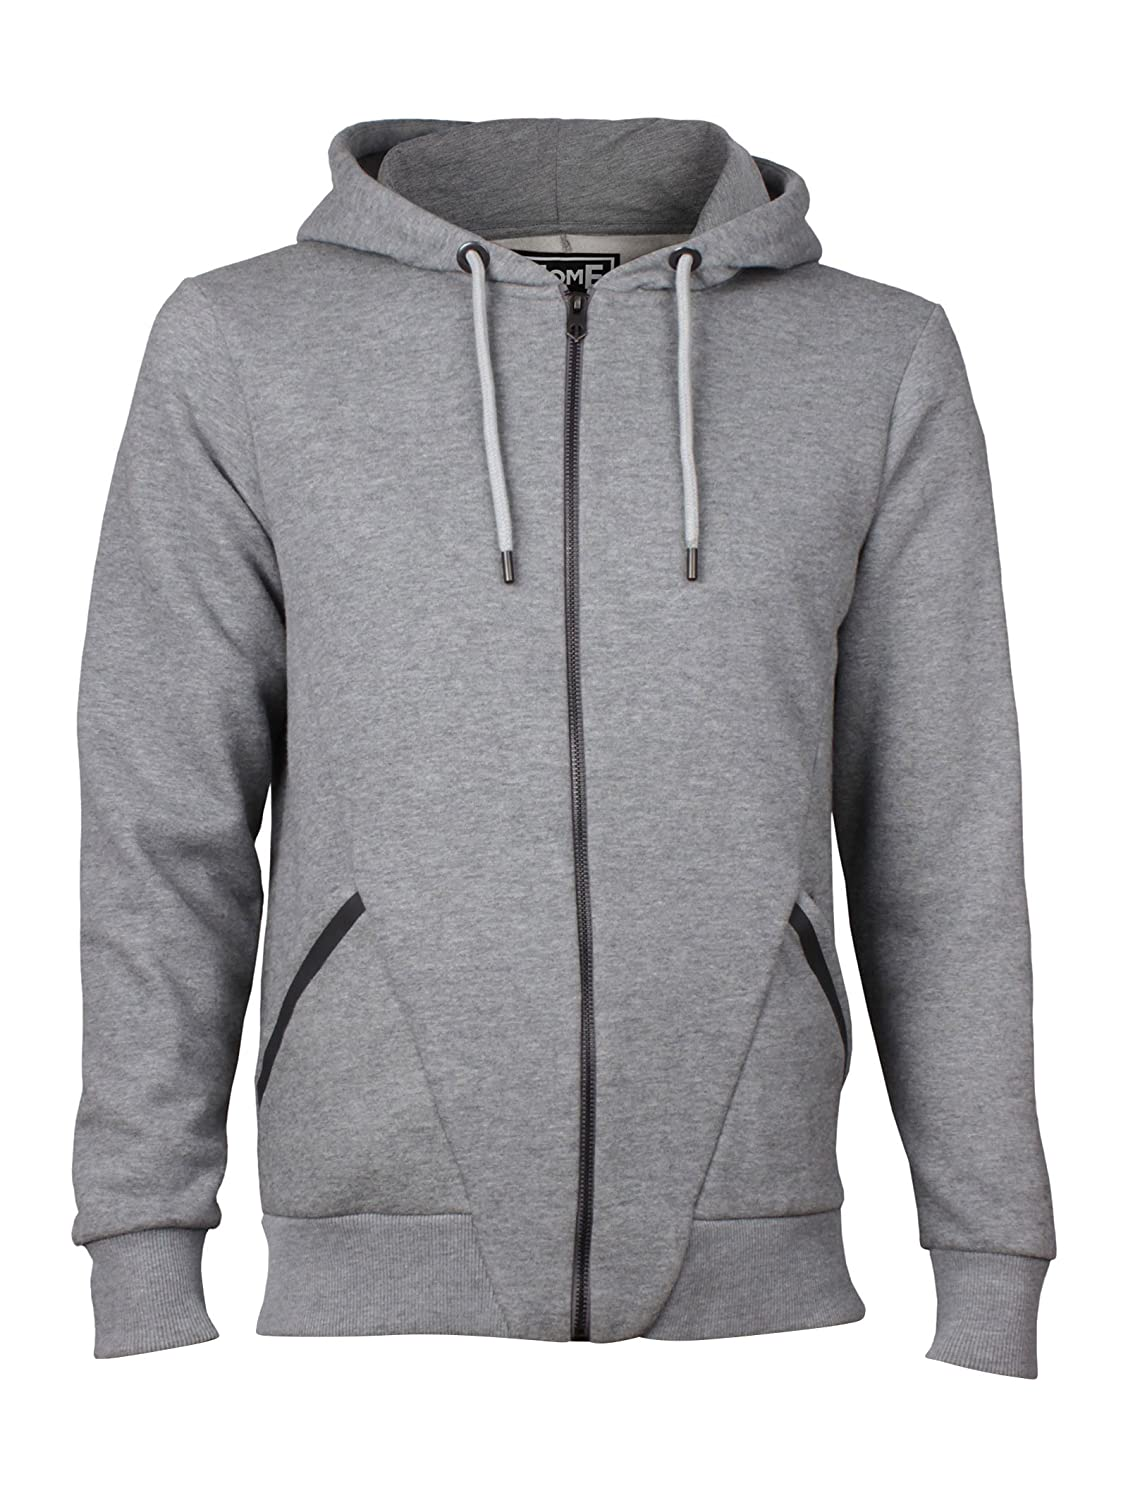 Homeboy Loud Couture Herren Kapuzen-Sweatjacke Grounded Zipper Hoody 12-Hb-Sw-01-15-00